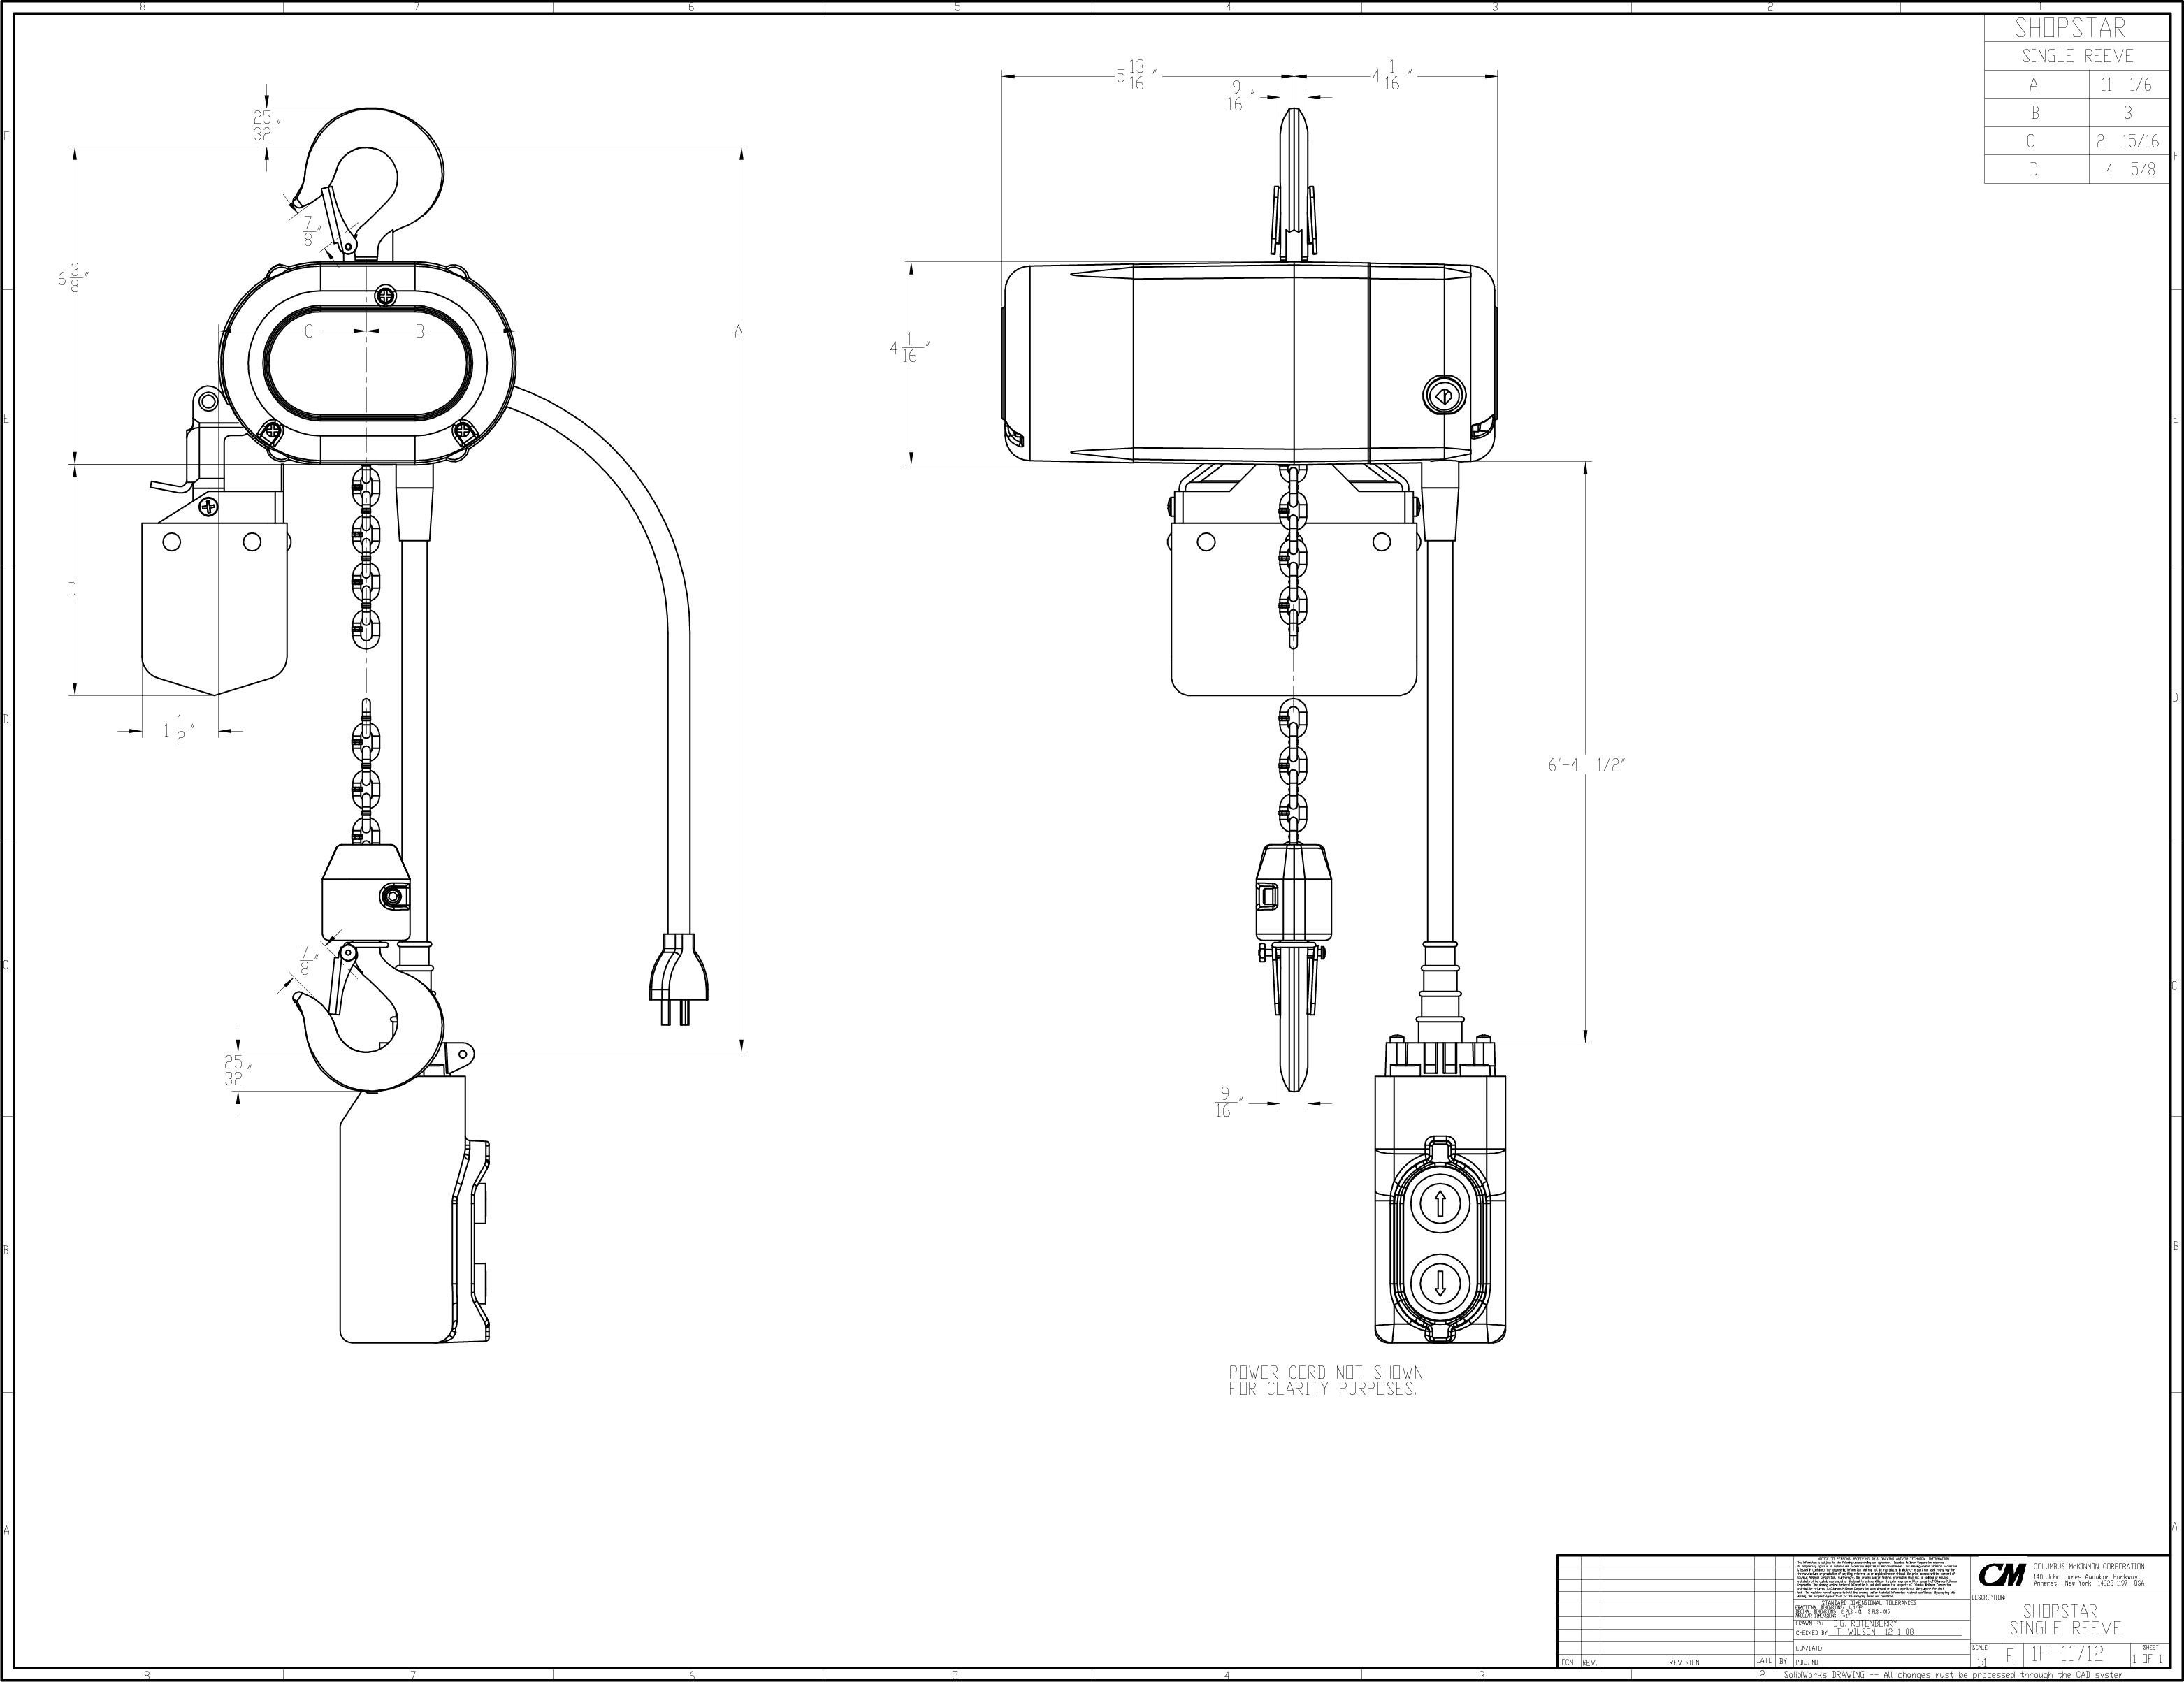 T40 Hook Lift Wiring Diagram